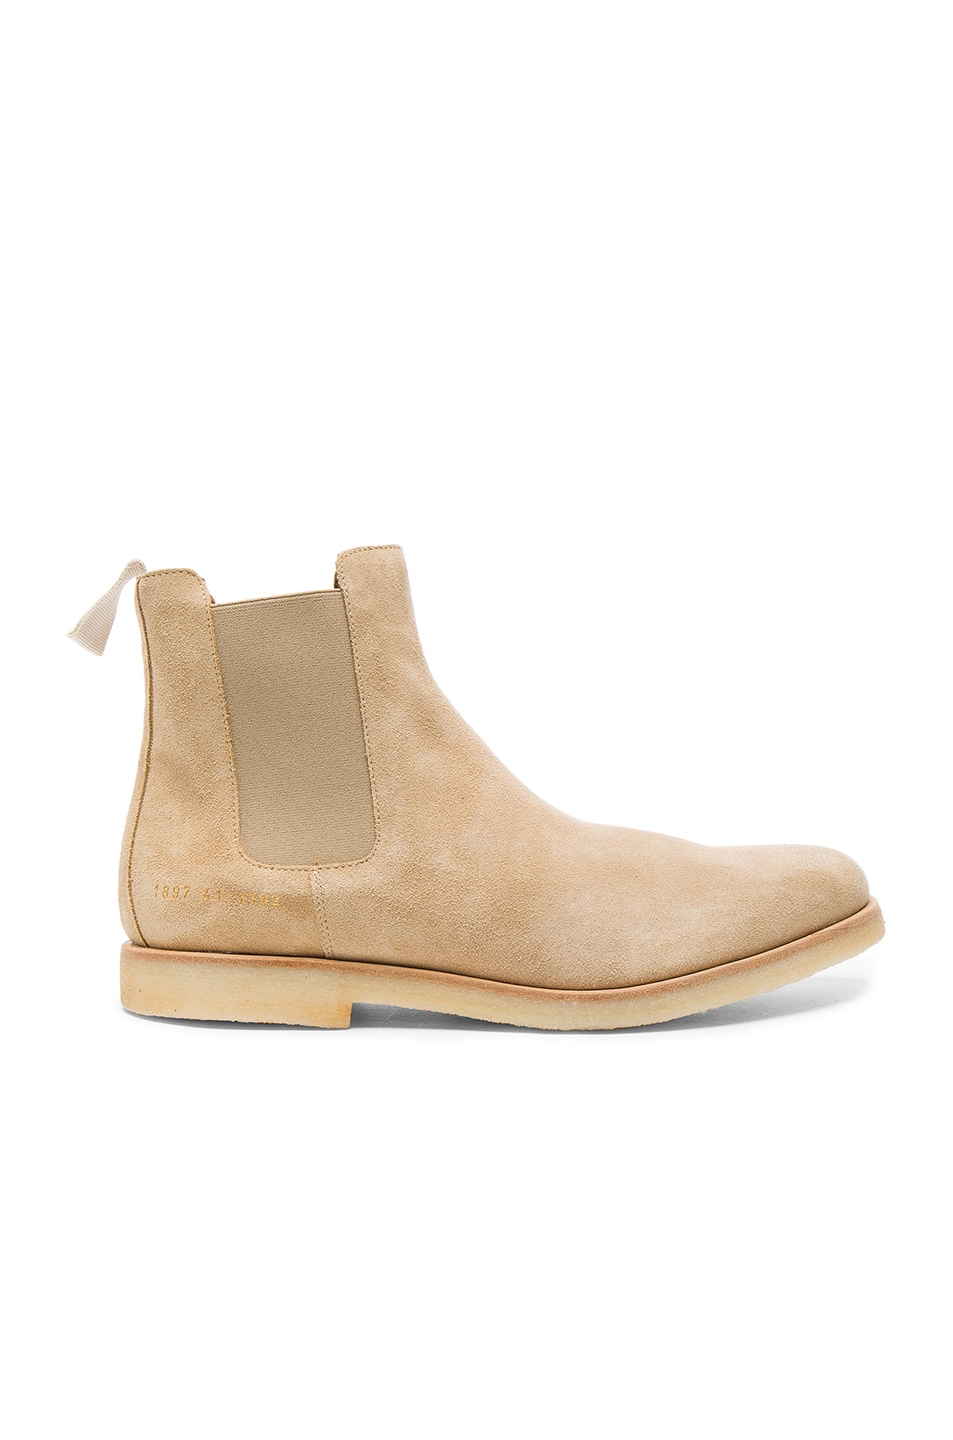 Image 2 of Common Projects Suede Chelsea Boots in Tan